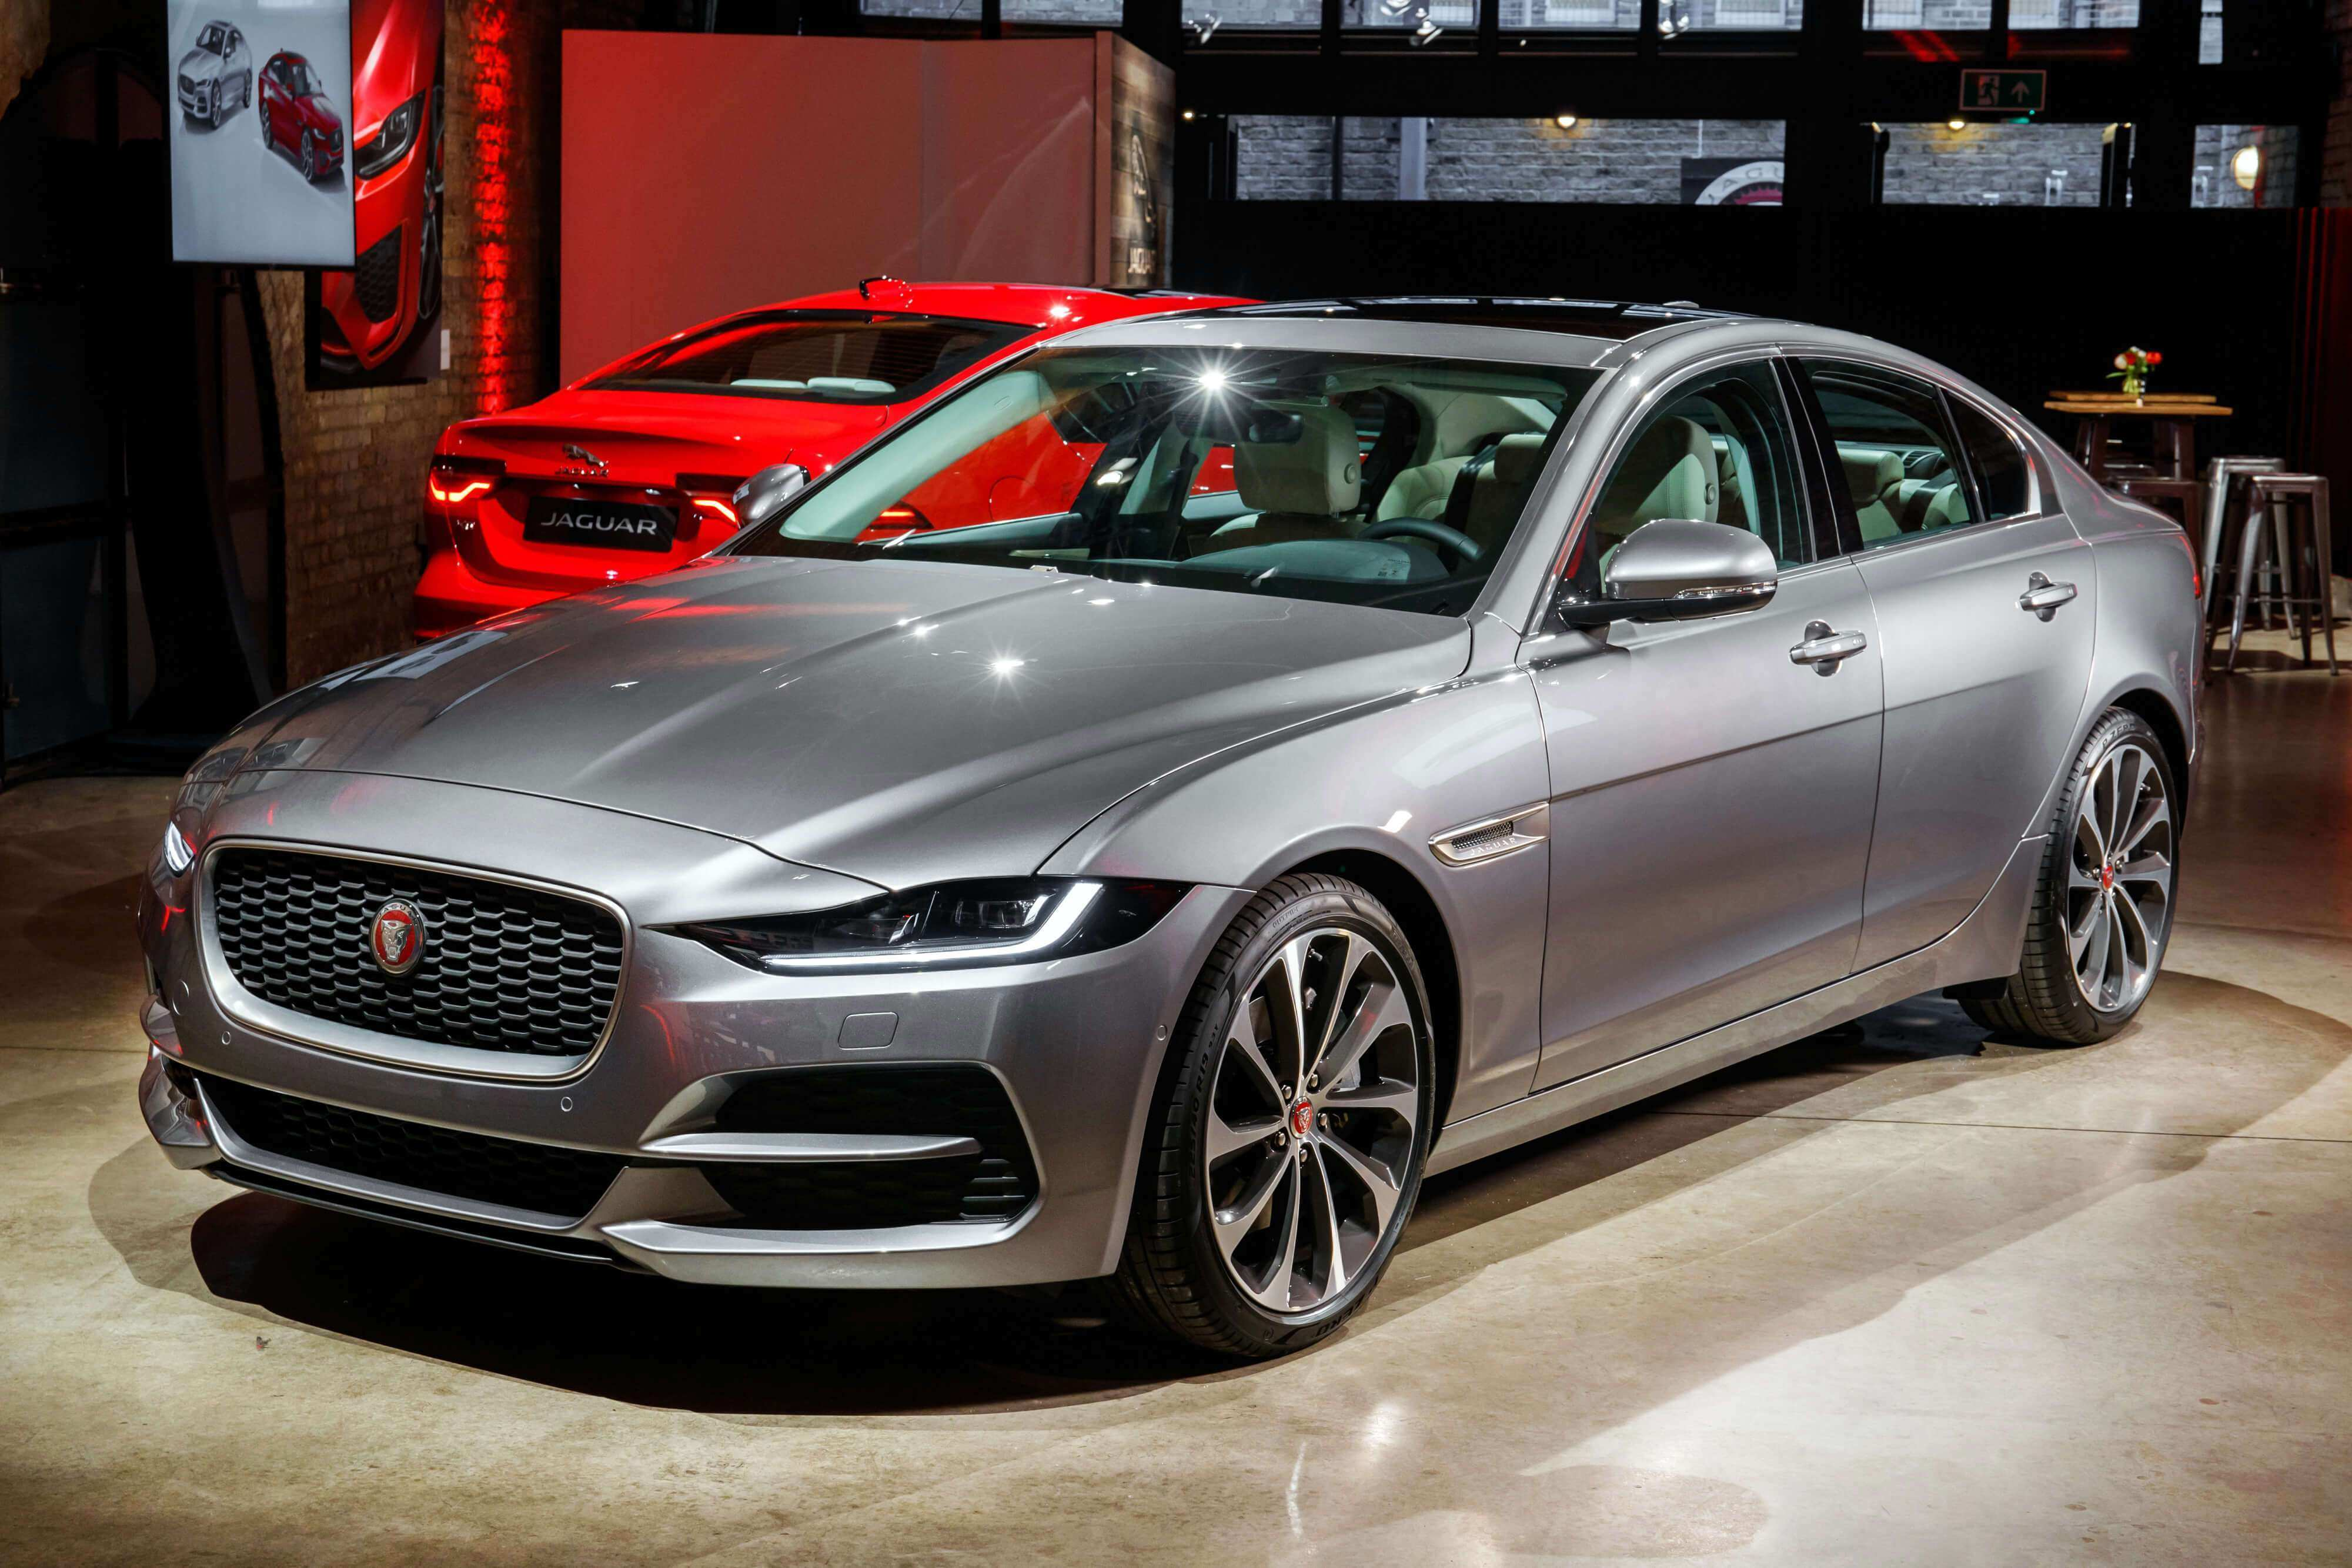 52 Gallery of New Jaguar Xf 2020 Spesification with New Jaguar Xf 2020